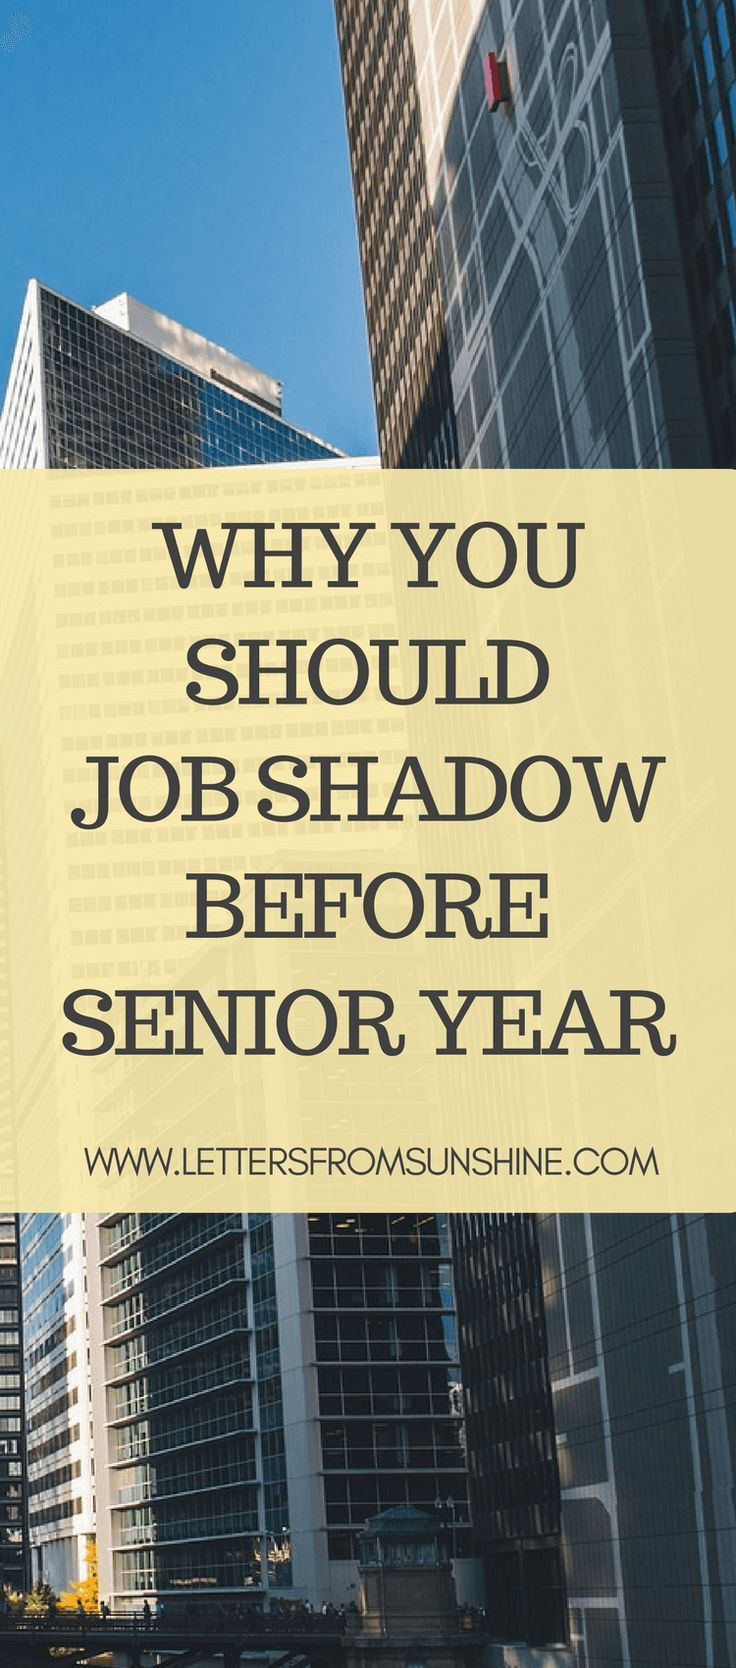 why you should job shadow before senior year